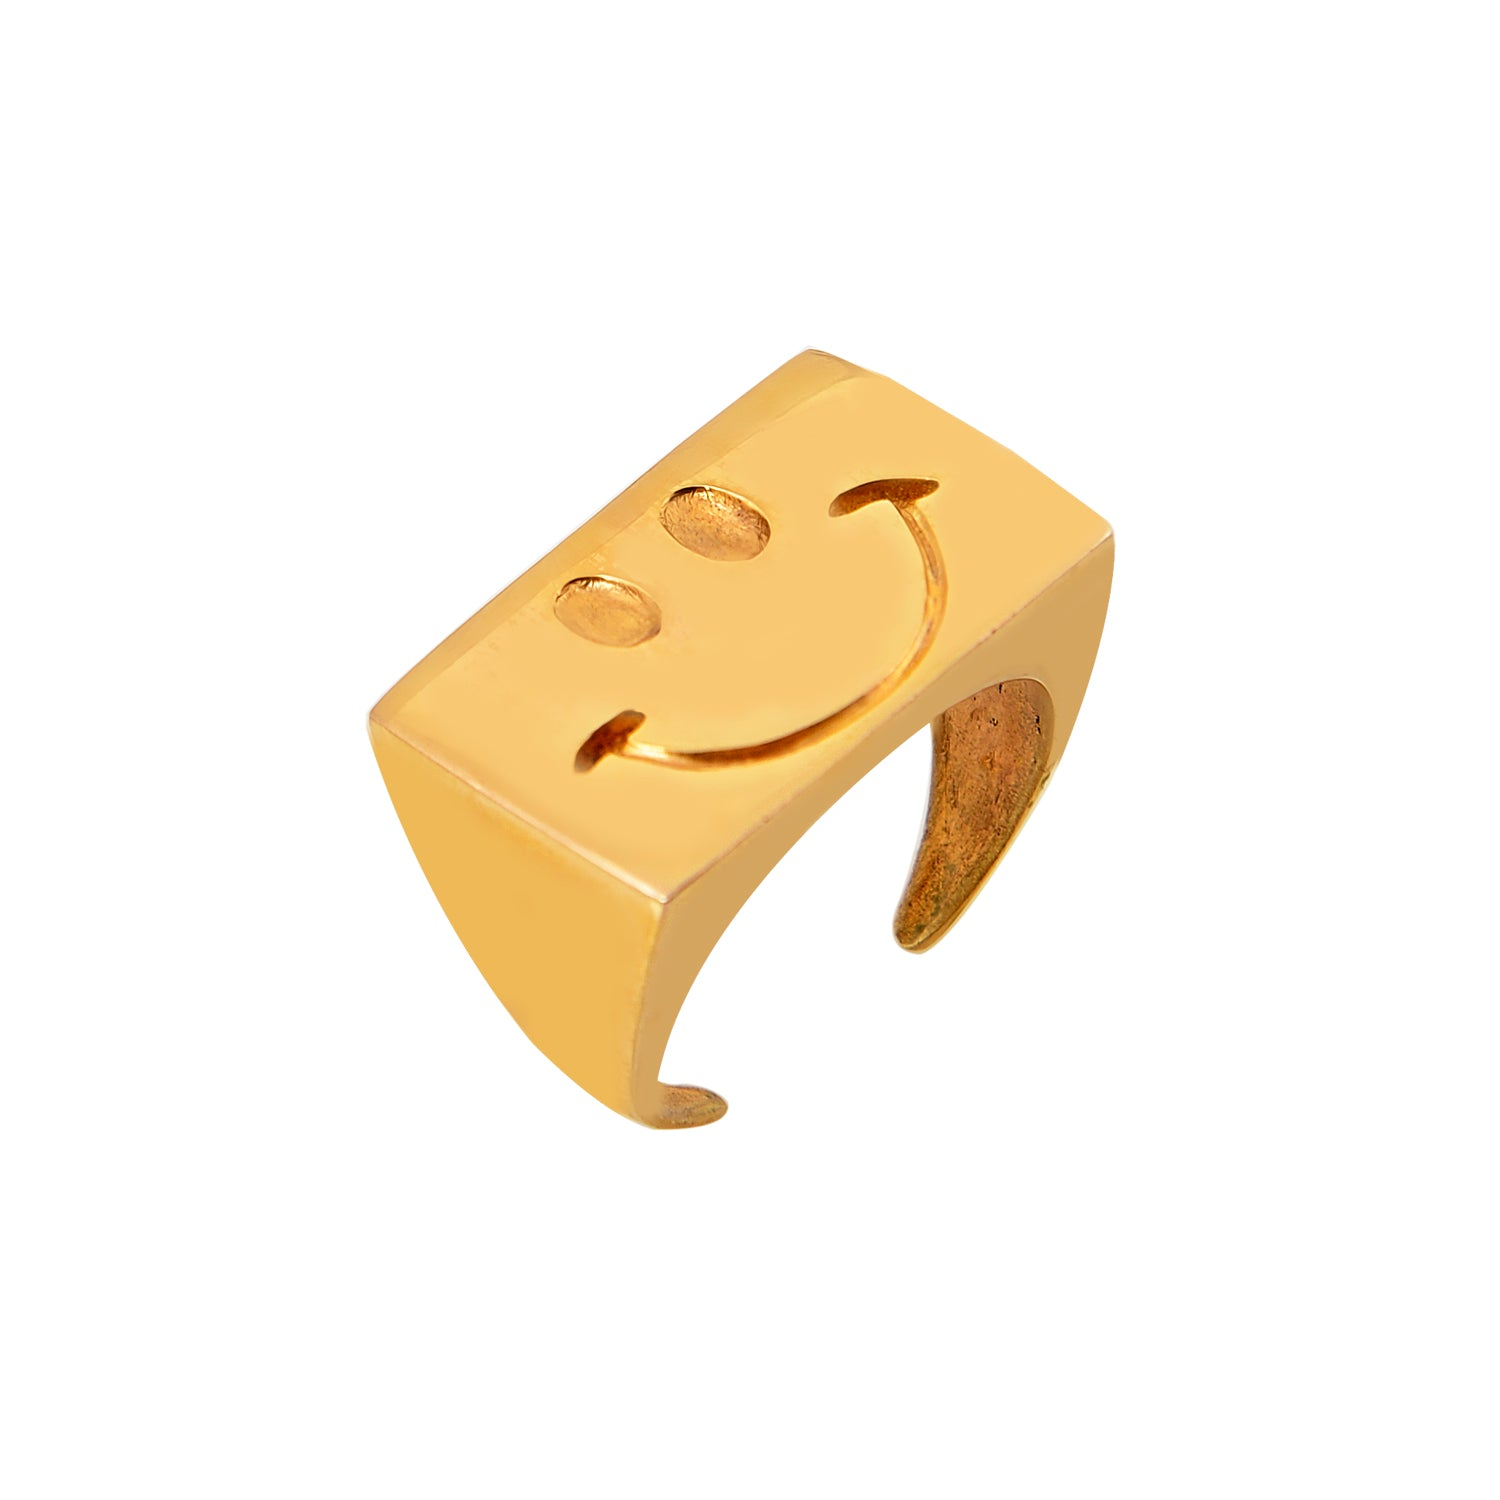 The Dude - 80's retro smiley face ring gold plated Mayol - Shop with Sparkle & The Sinner